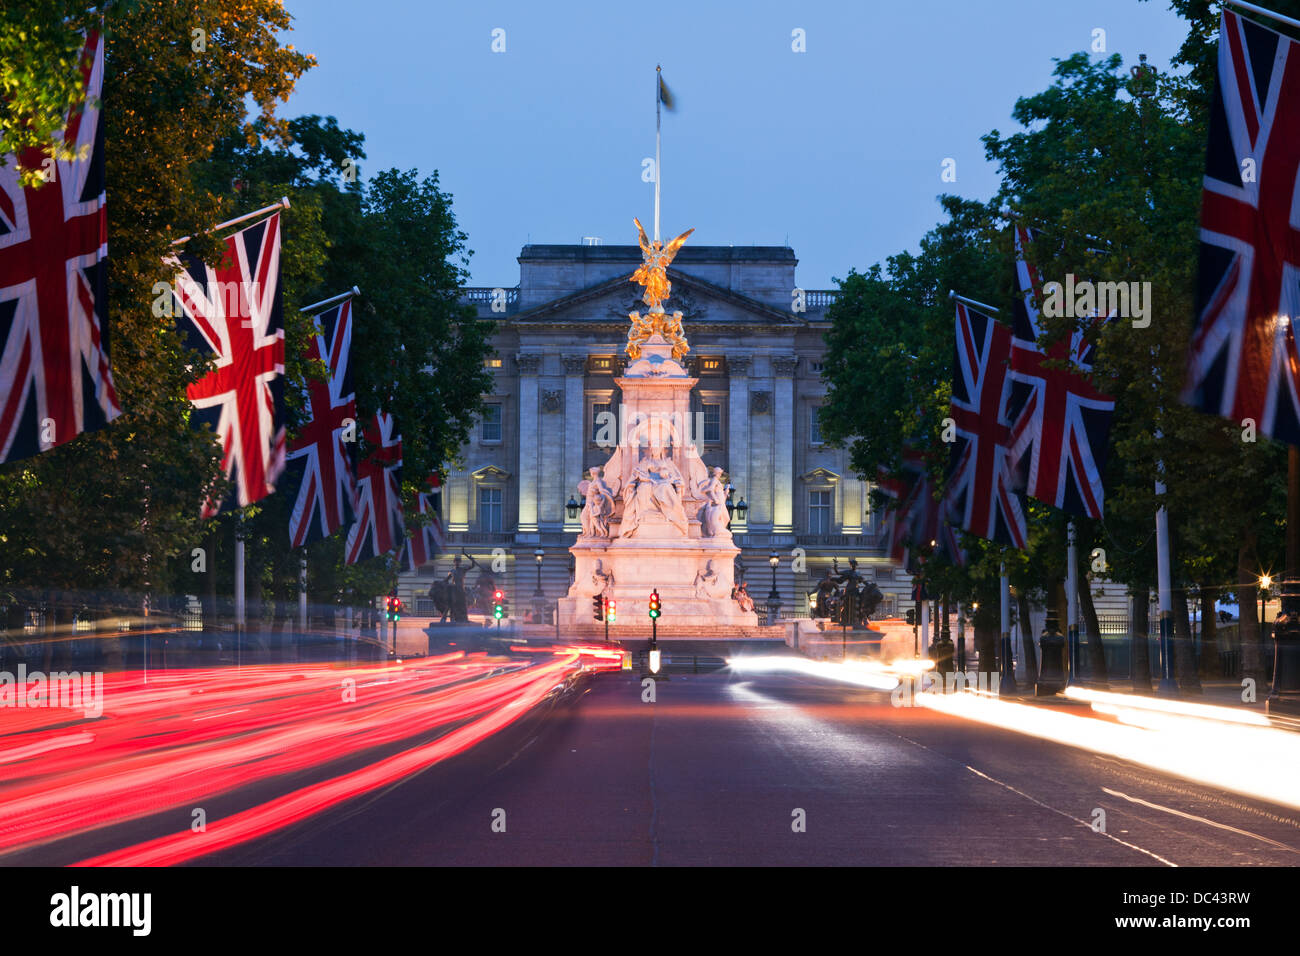 Die Mall in der Nacht mit Victoria Denkmal und Buckingham Palace London UK Stockbild